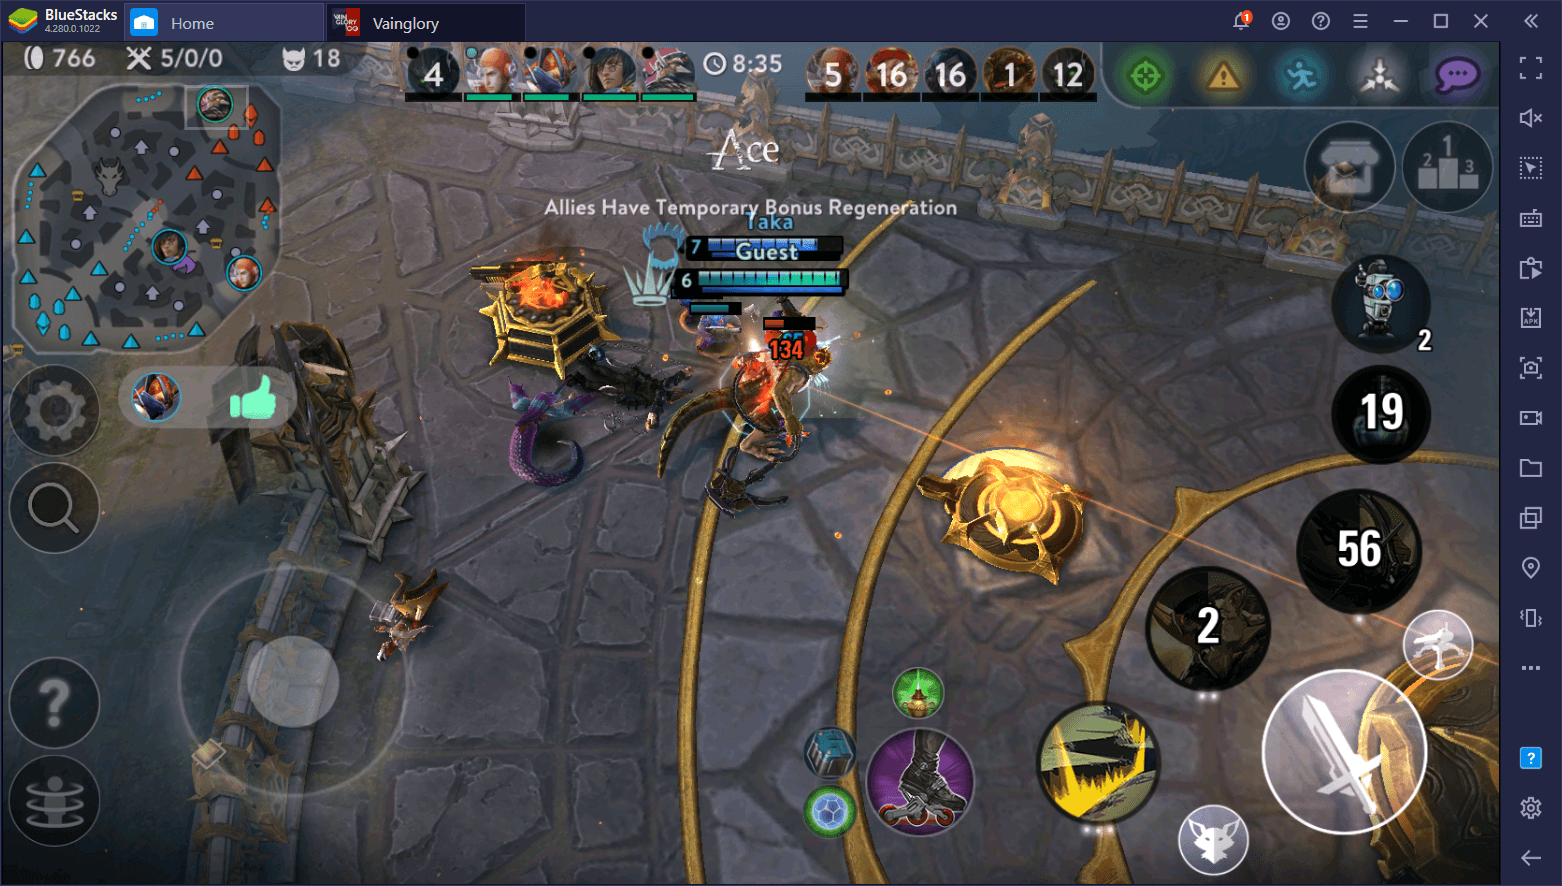 The Best Vainglory Tips and Tricks for Dominating All Your Matches